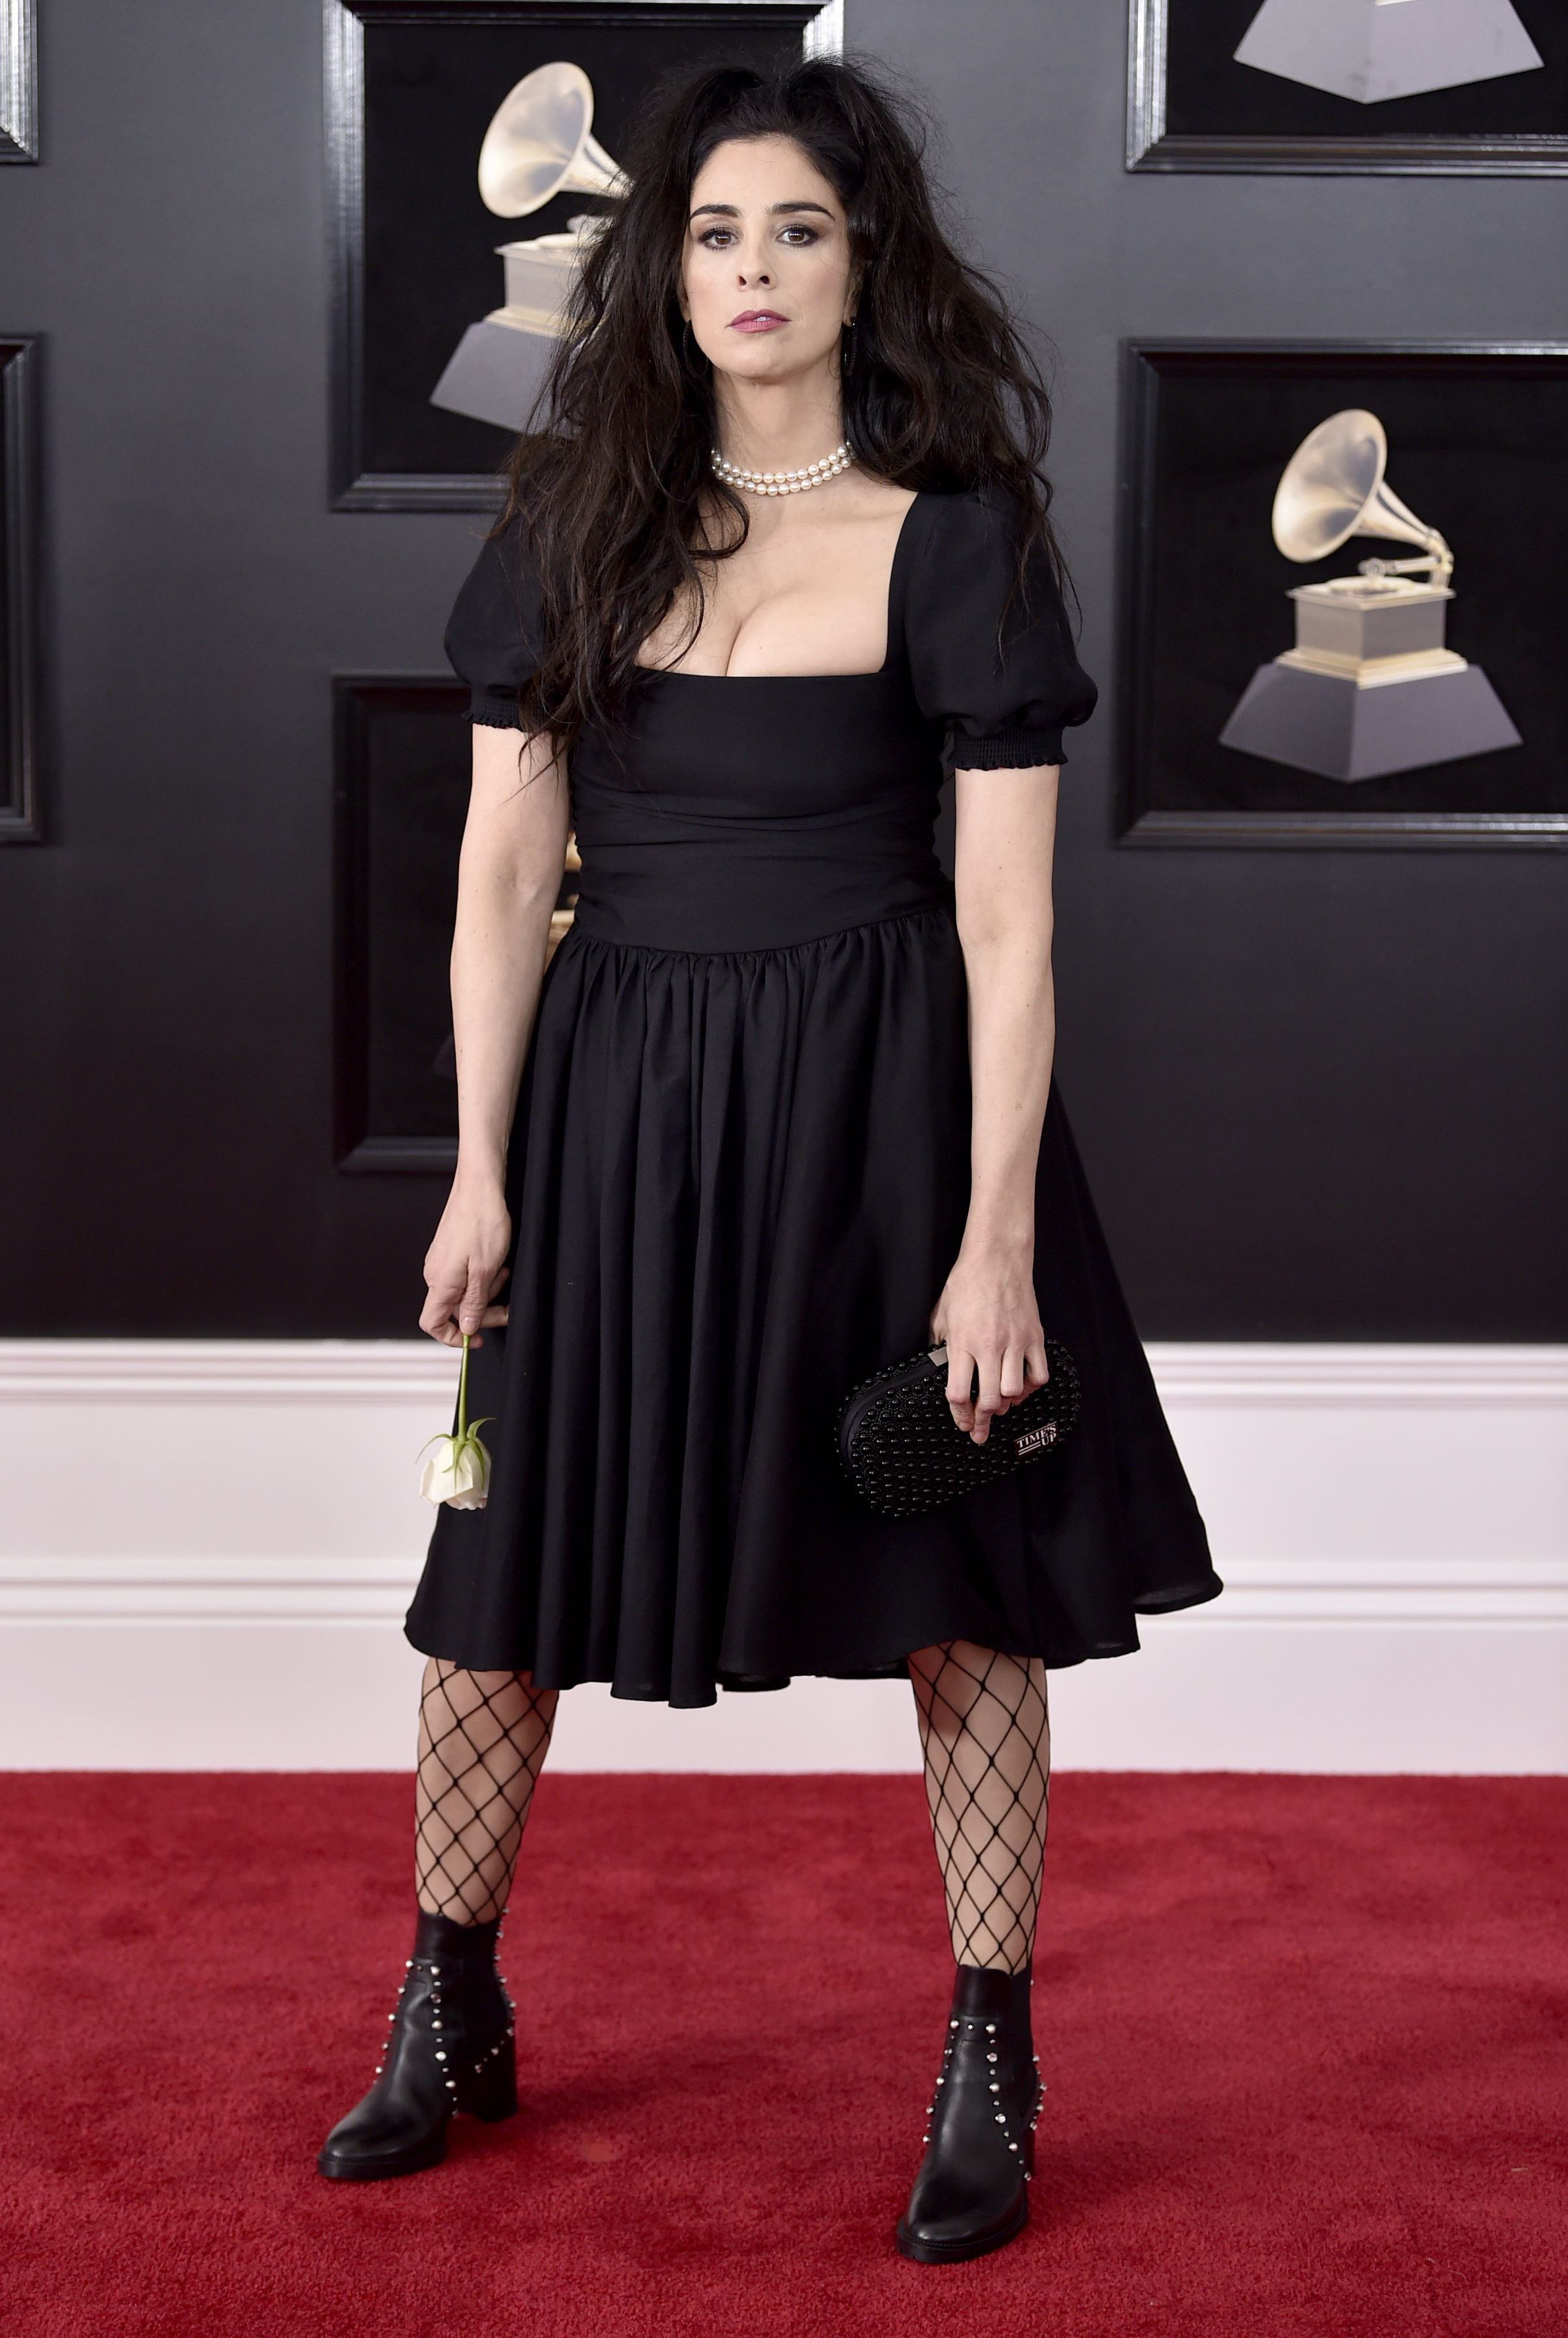 <div class='meta'><div class='origin-logo' data-origin='AP'></div><span class='caption-text' data-credit='Evan Agostini/Invision/AP'>Sarah Silverman arrives at the 60th annual Grammy Awards at Madison Square Garden on Sunday, Jan. 28, 2018, in New York.</span></div>